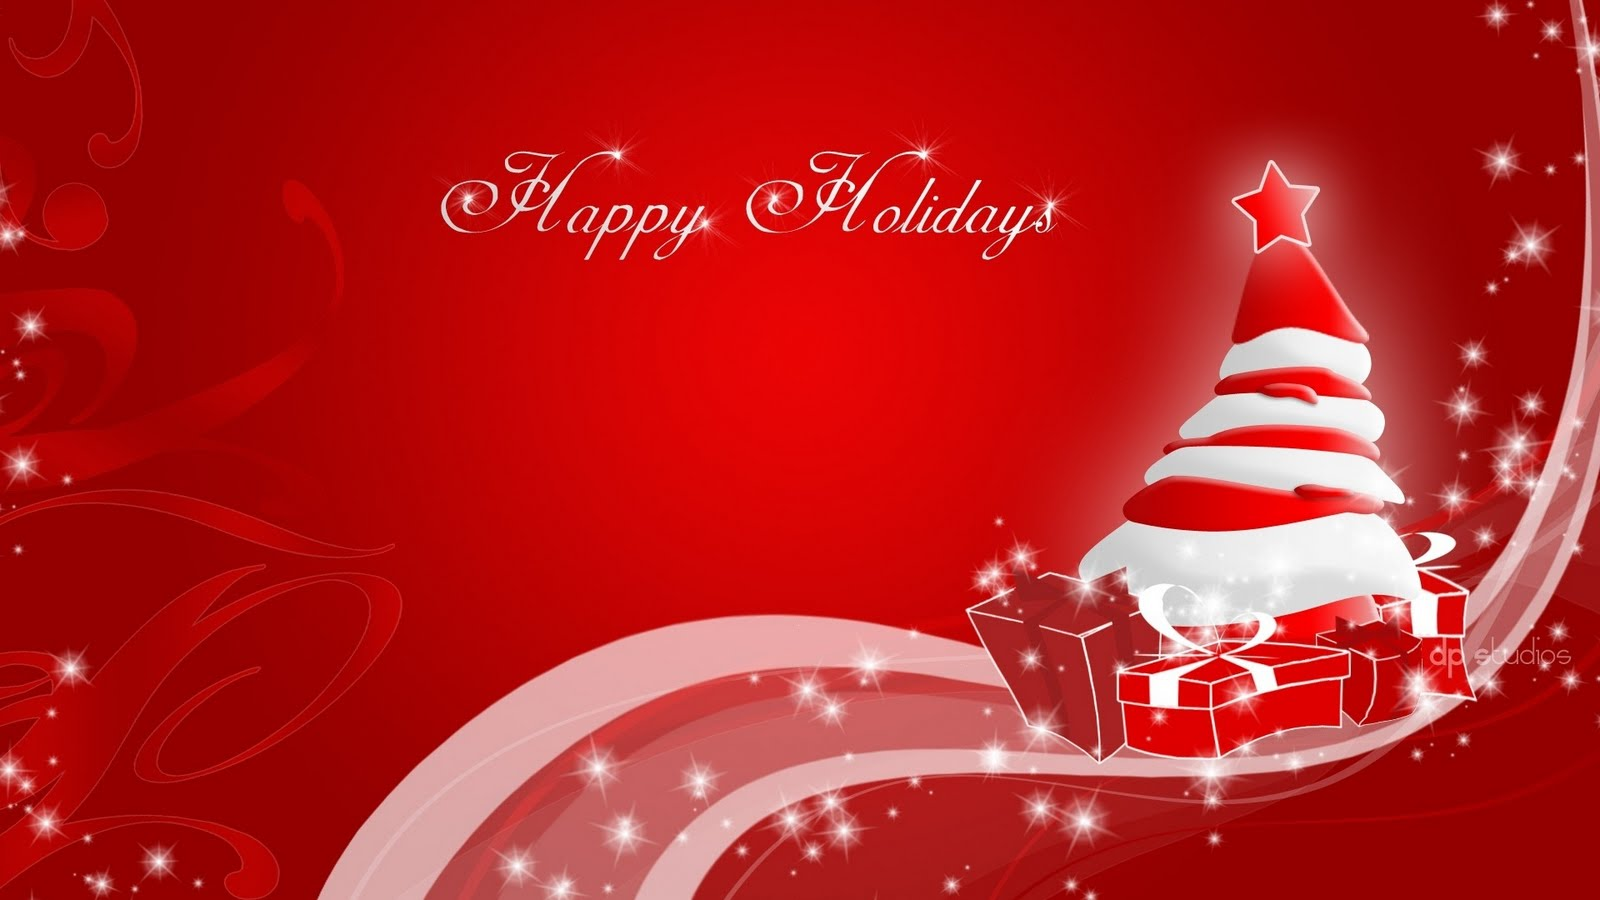 Happy Winter & Christmas Holidays Wallpapers HD  - happy winter  christmas holidays wallpapers